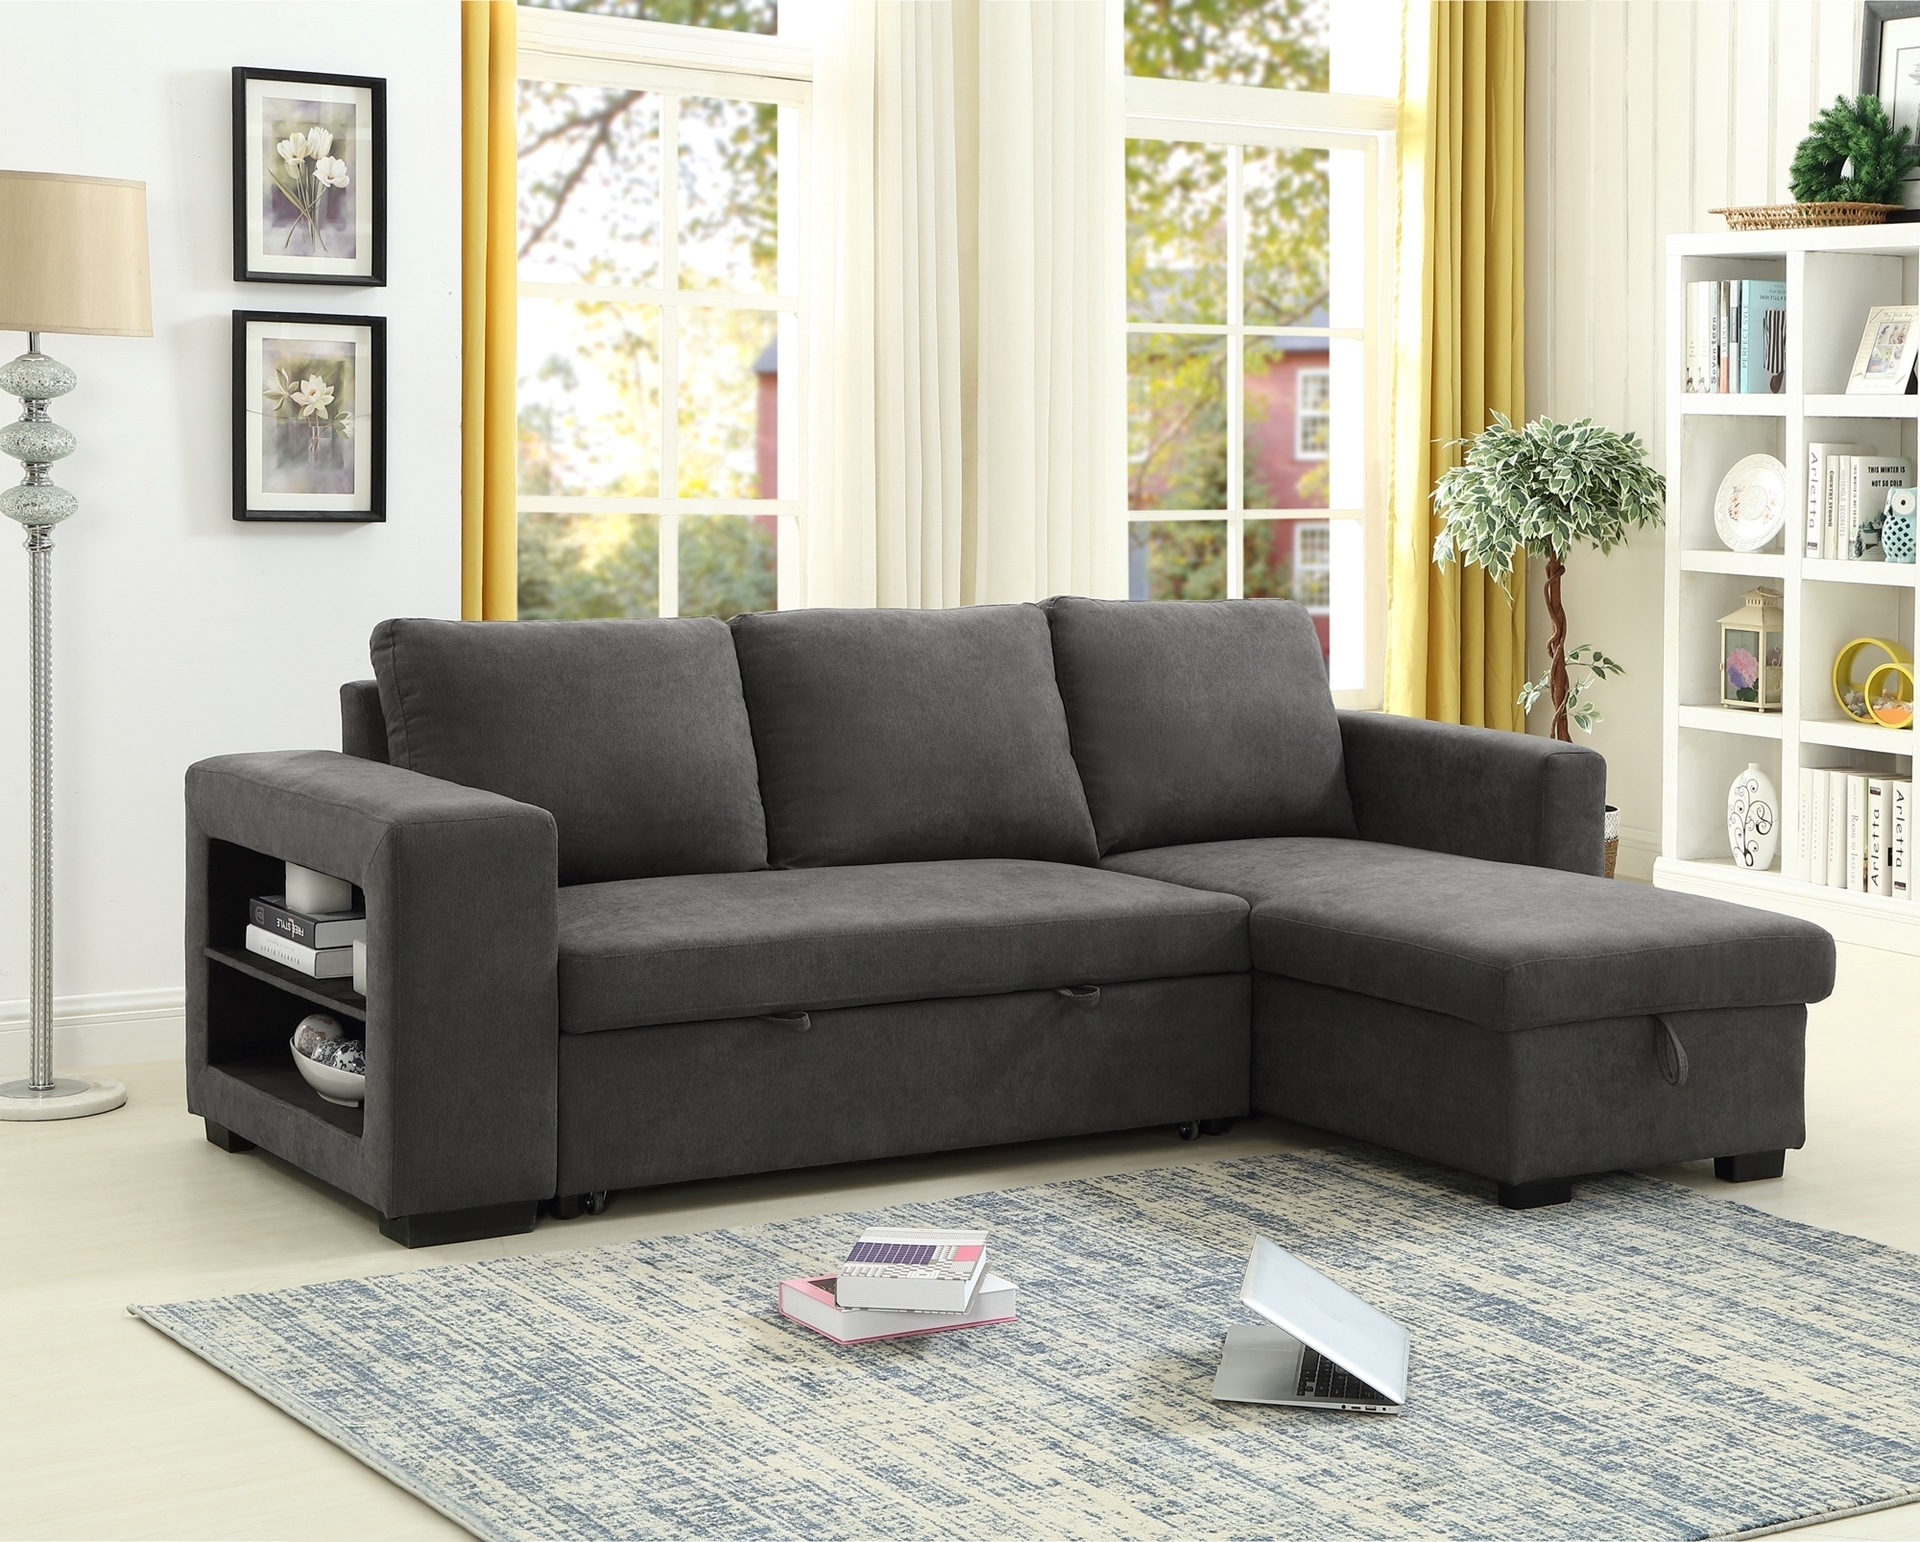 Lucena Reversible Sectional Sofa/Sofa Bed With Storage For Palisades Reversible Small Space Sectional Sofas With Storage (View 3 of 15)